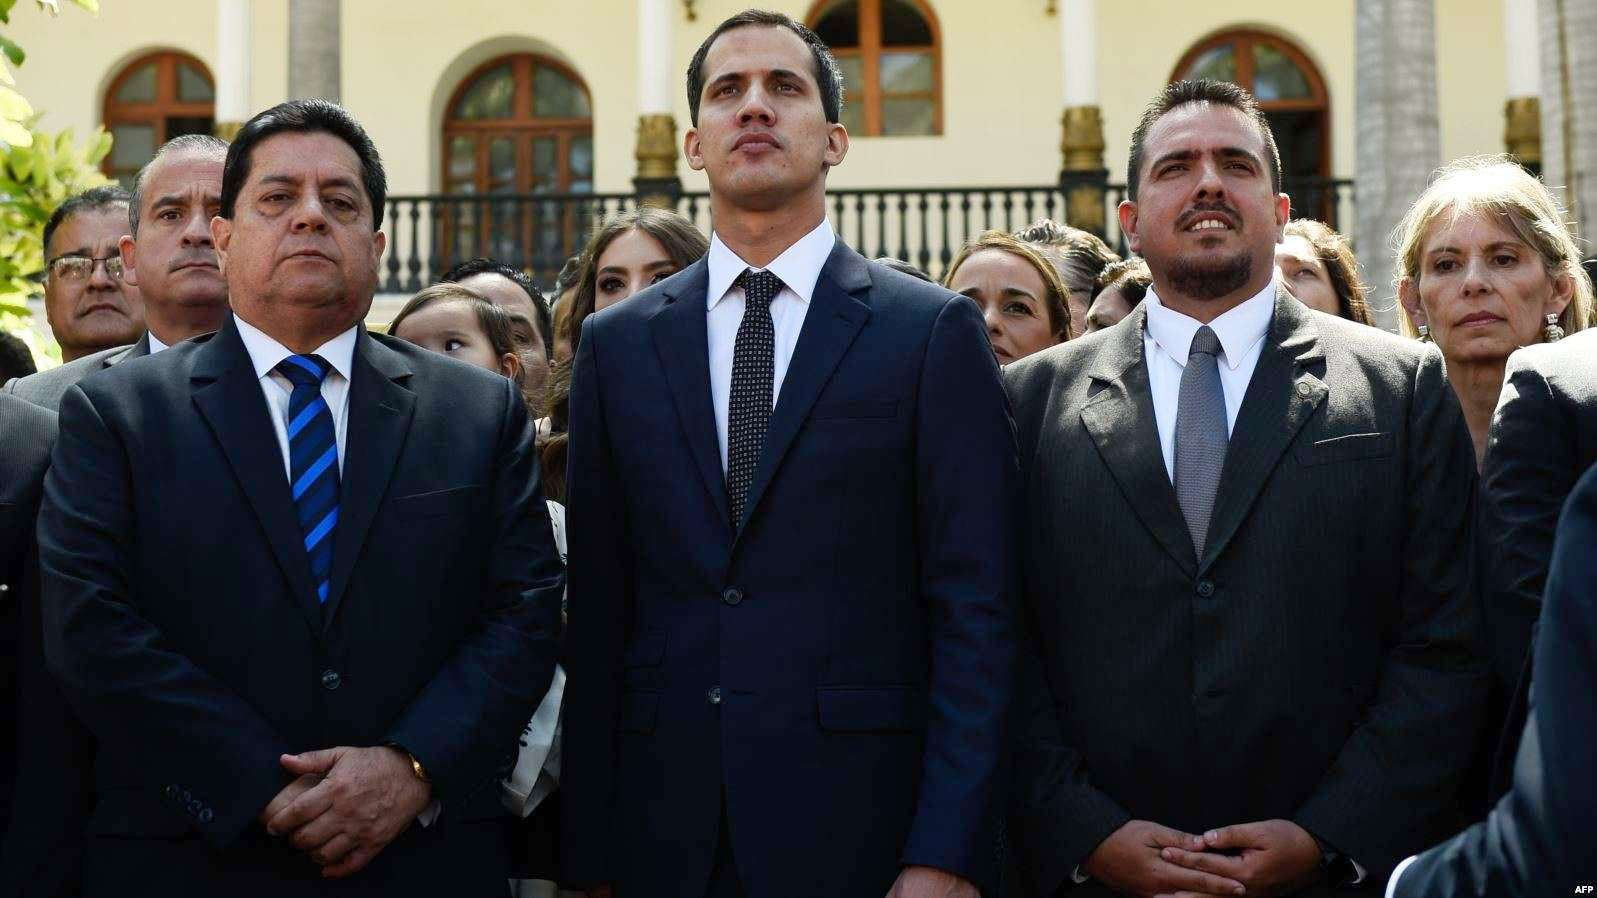 Juan Gerardo Guaidó Márquez (center) is a Venezuelan engineer and politician serving as the President of the National Assembly of Venezuela since 5 January 2019. A member of the centrist social-democratic Popular Will party, he also serves as a federal deputy representing the state of Vargas.